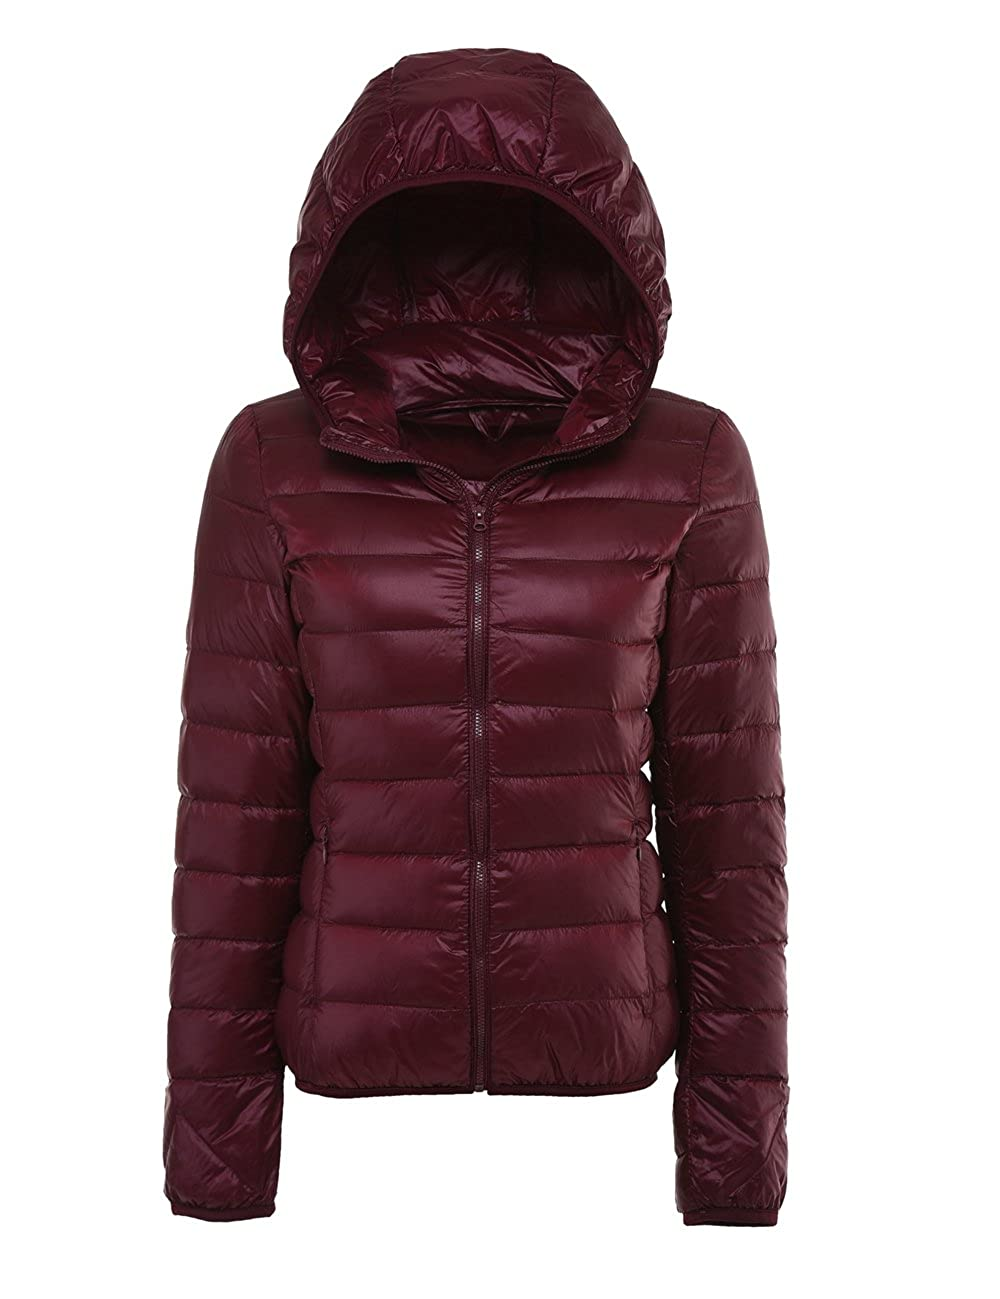 LANBAOSI Women Packable Puffer Jacket with Hoodie Lightweight Down Jacket Coat YRY18002